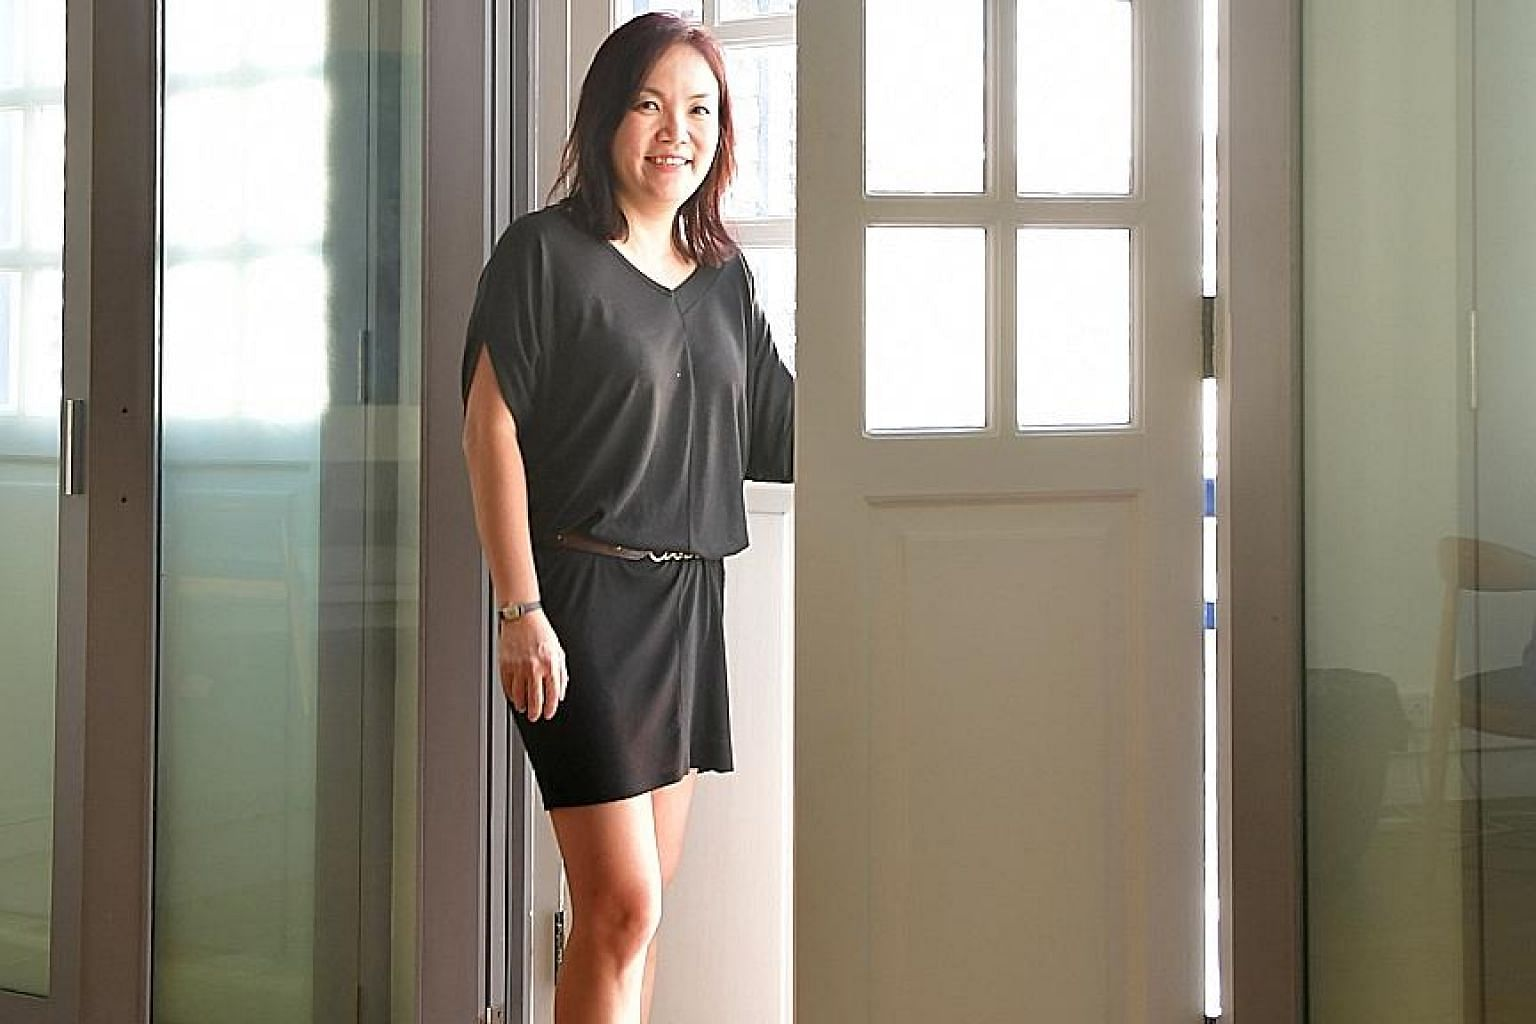 Charmaine Leung lived in Keong Saik Road until she was 11 when her mother gave up the brothel business.